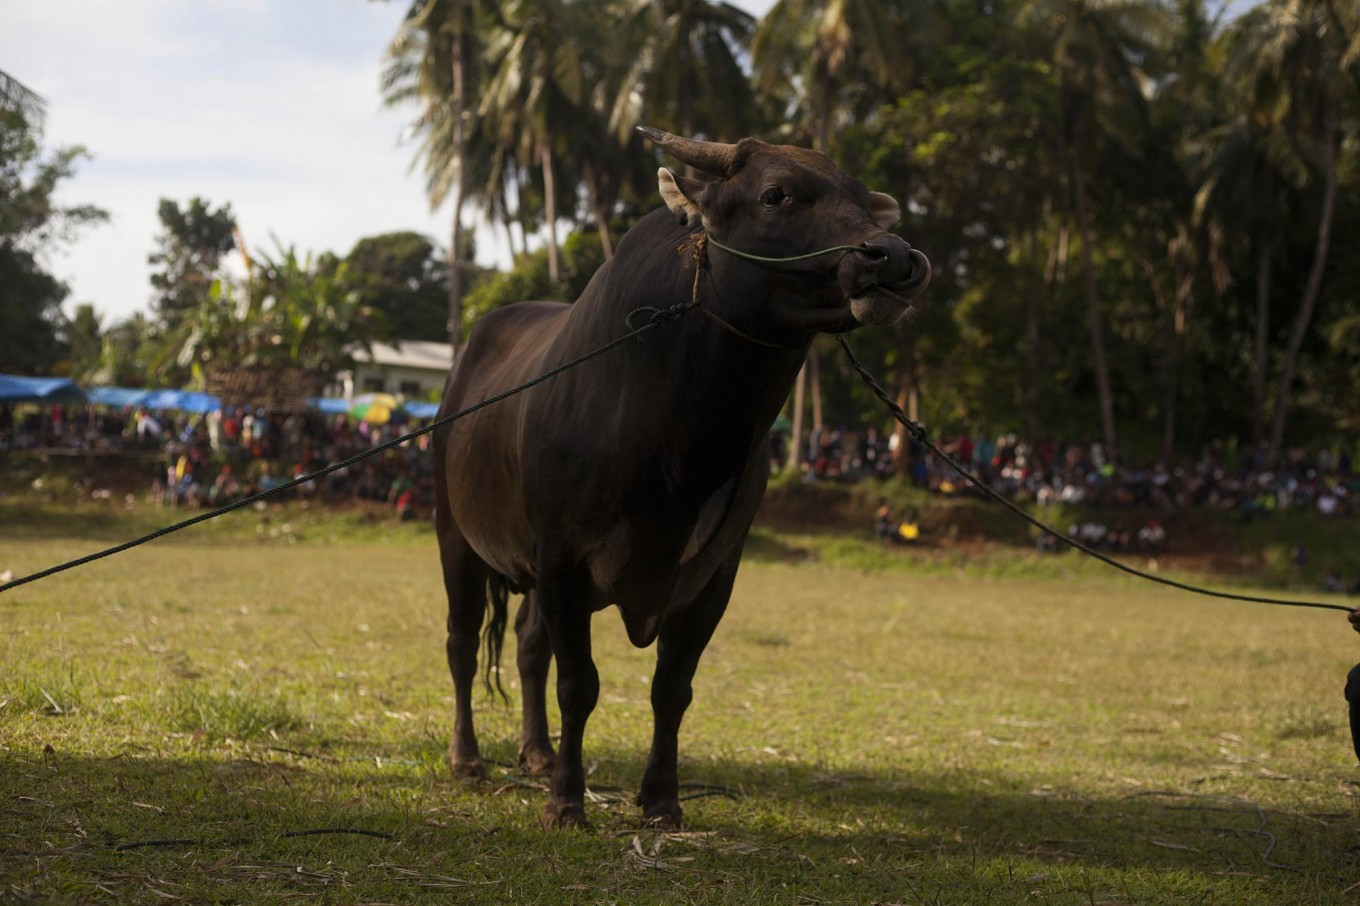 A bull is ready to enter the field. JP/Sigit Pamungkas